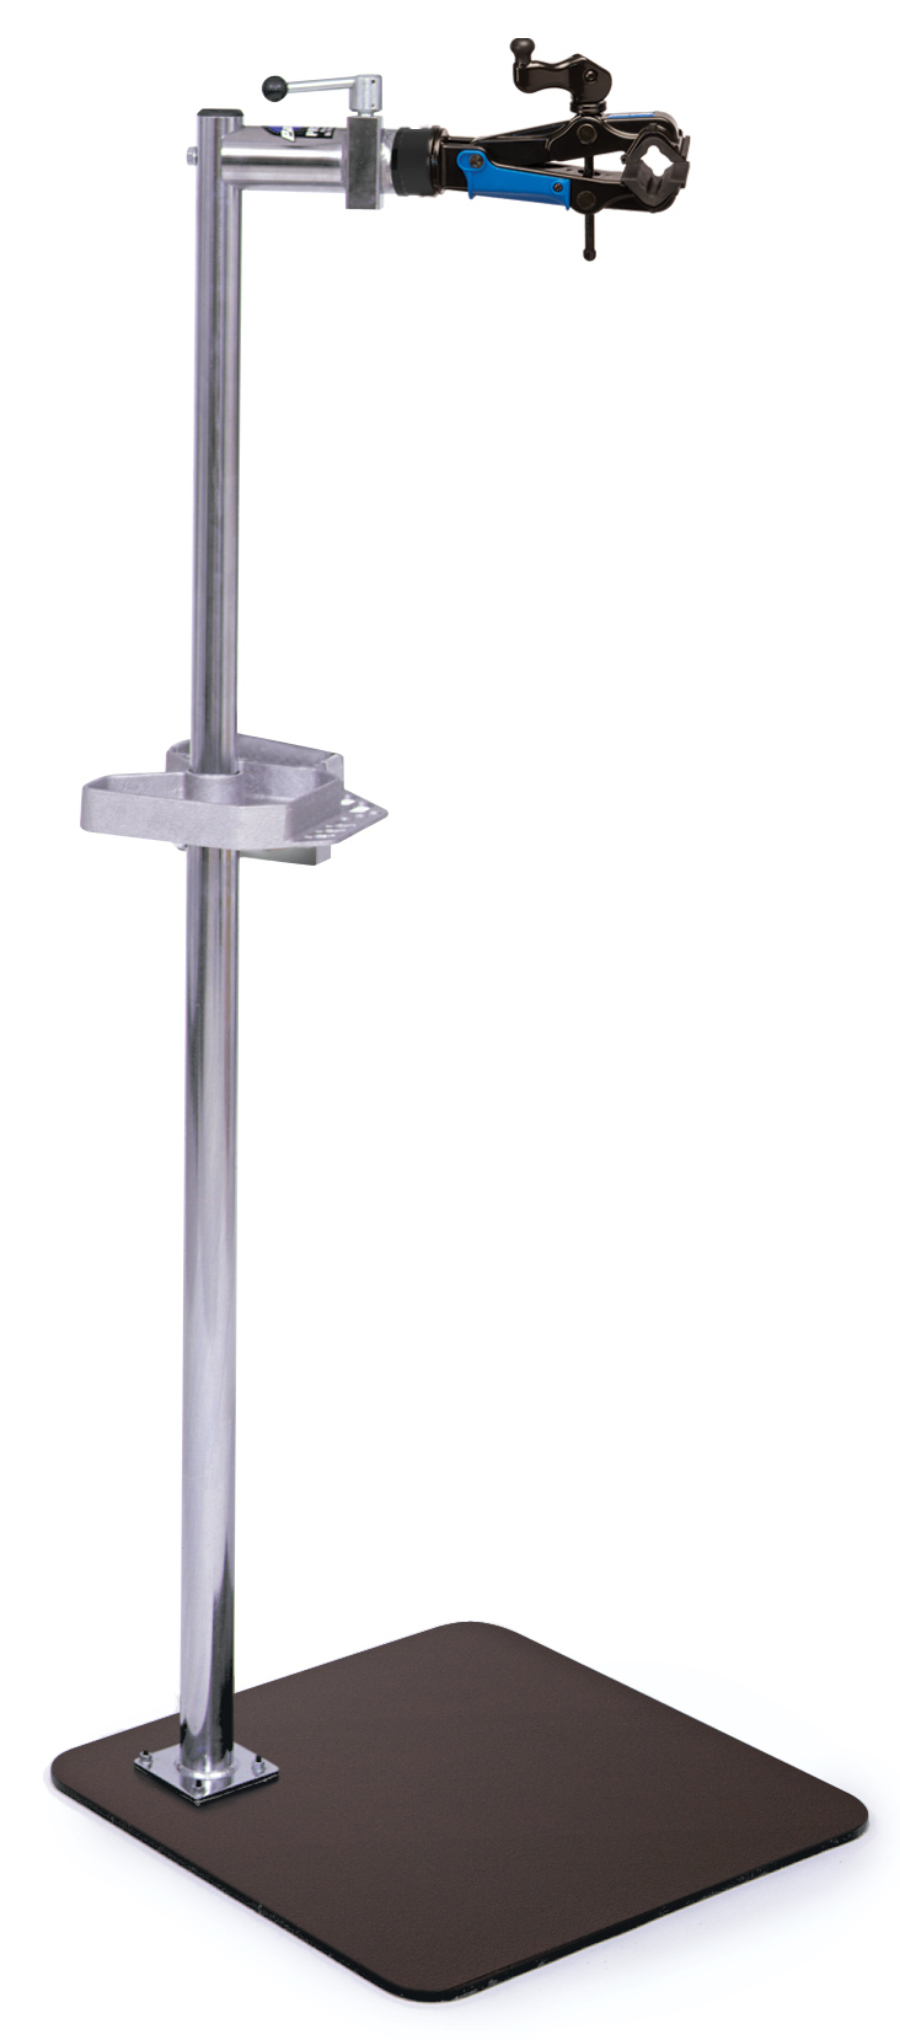 Prs 3 Os 2 Deluxe Single Arm Repair Stand Park Tool